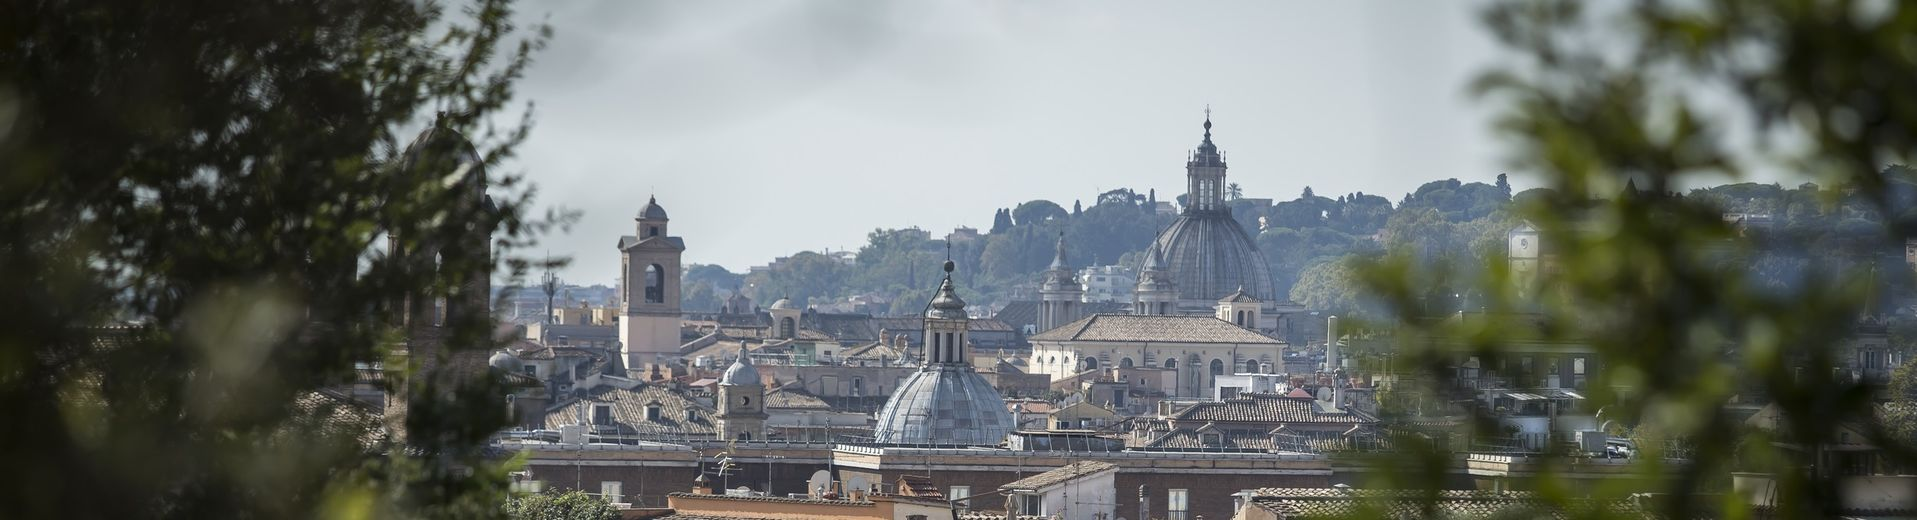 A view of city rooftops in Italy.